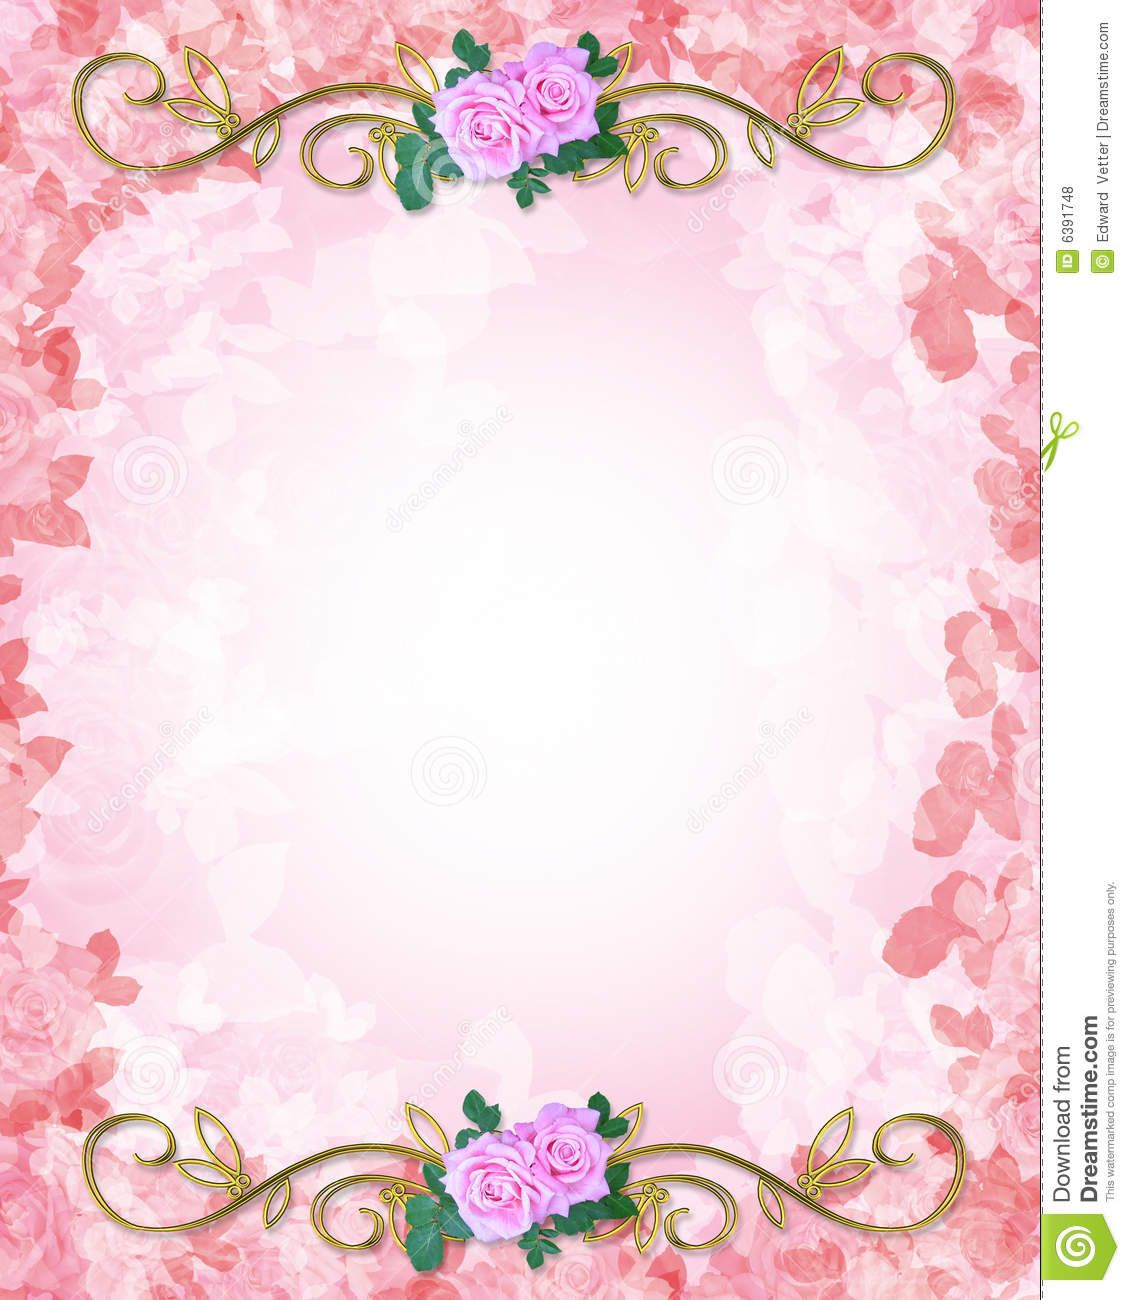 Wedding Invitation Maker Software Free Download: Wedding Templates Free - Google Search